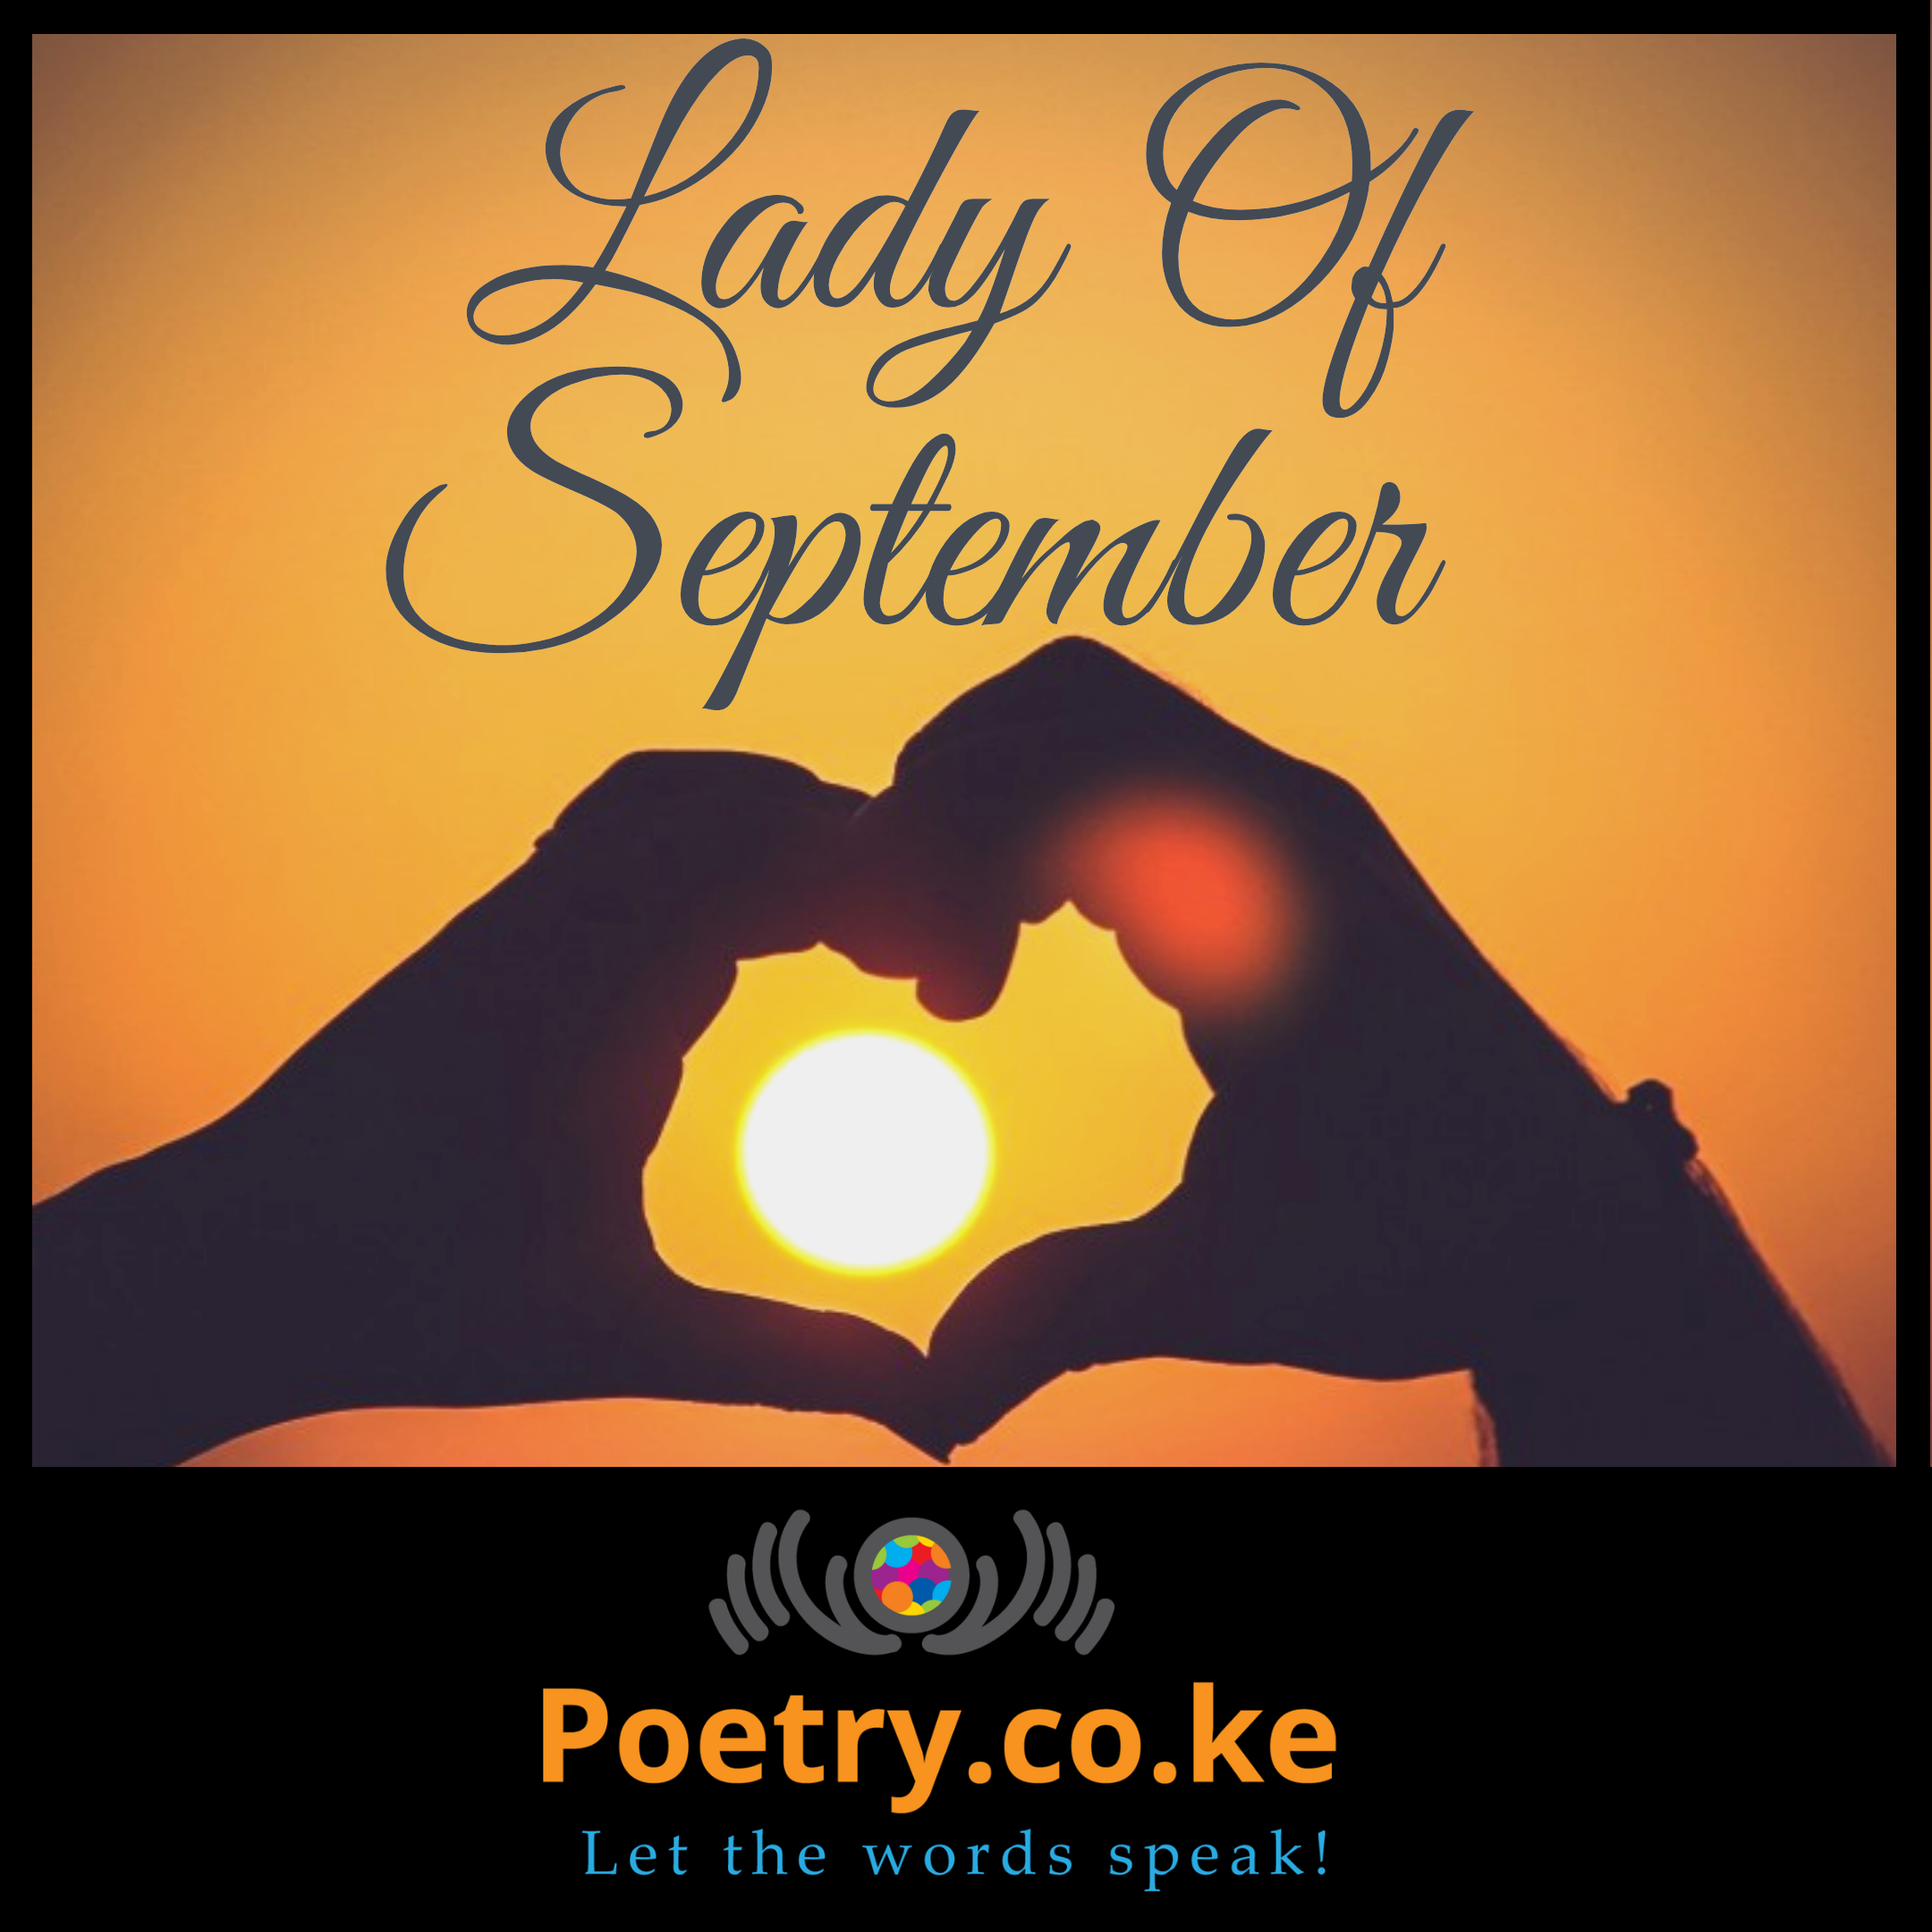 Lady Of September